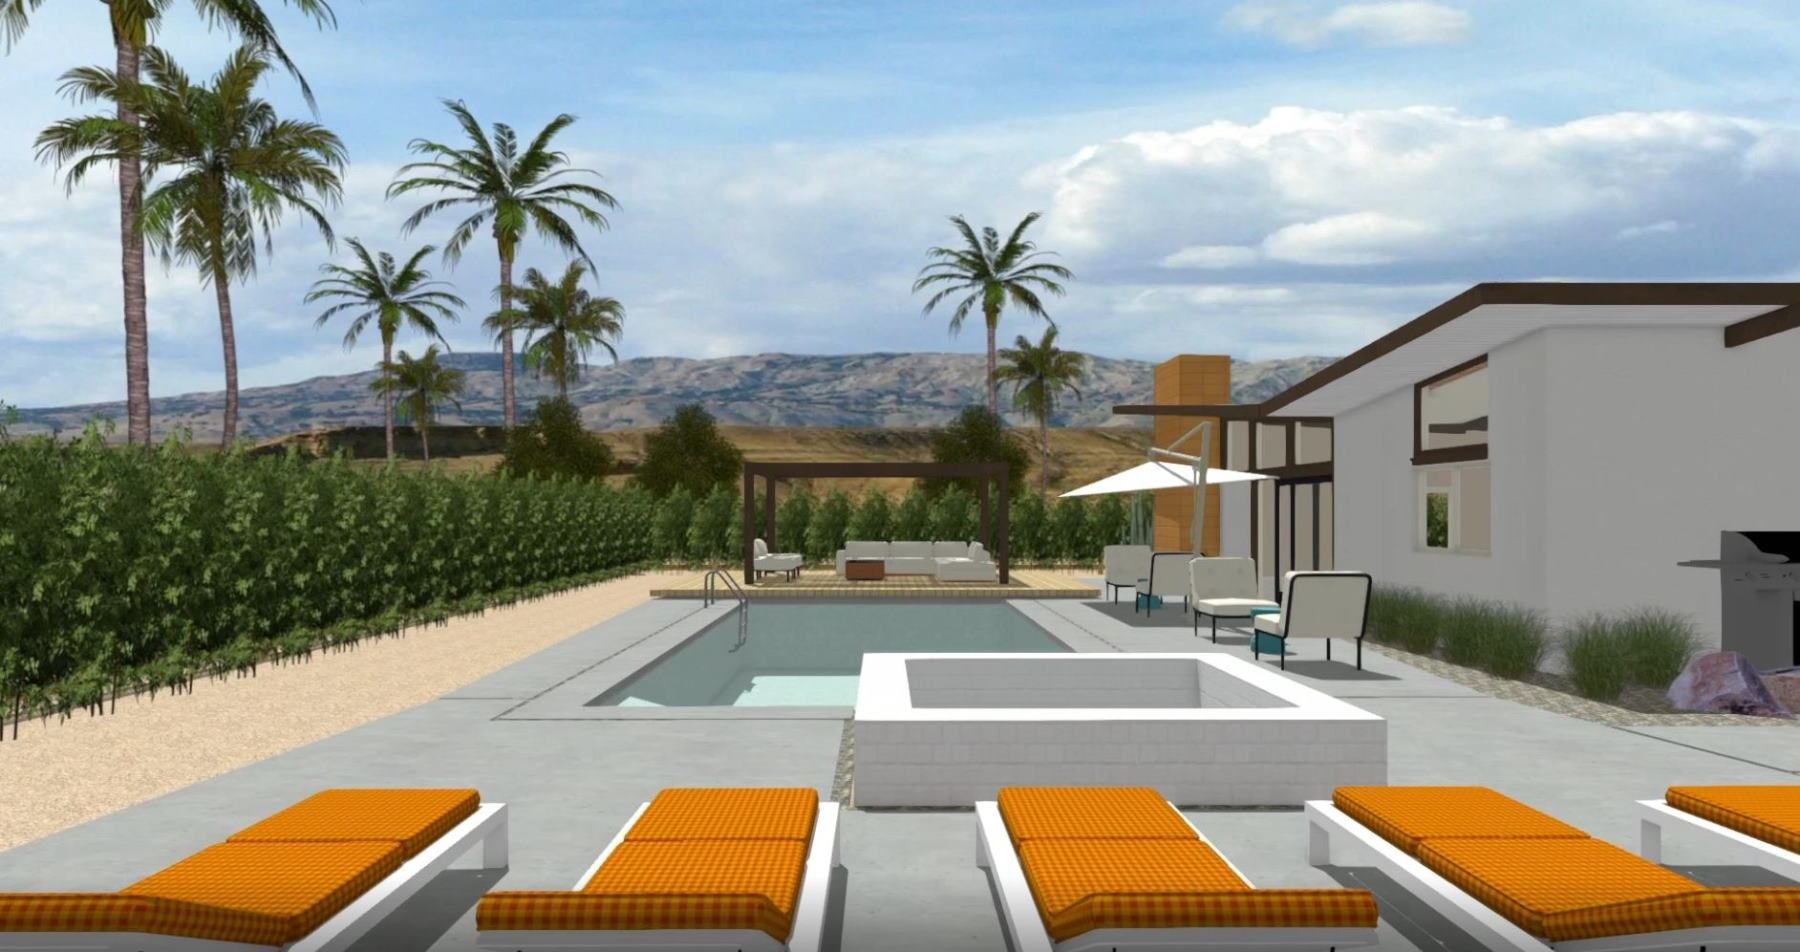 Back yard design with pool, raised deck, and seating area for socializing.